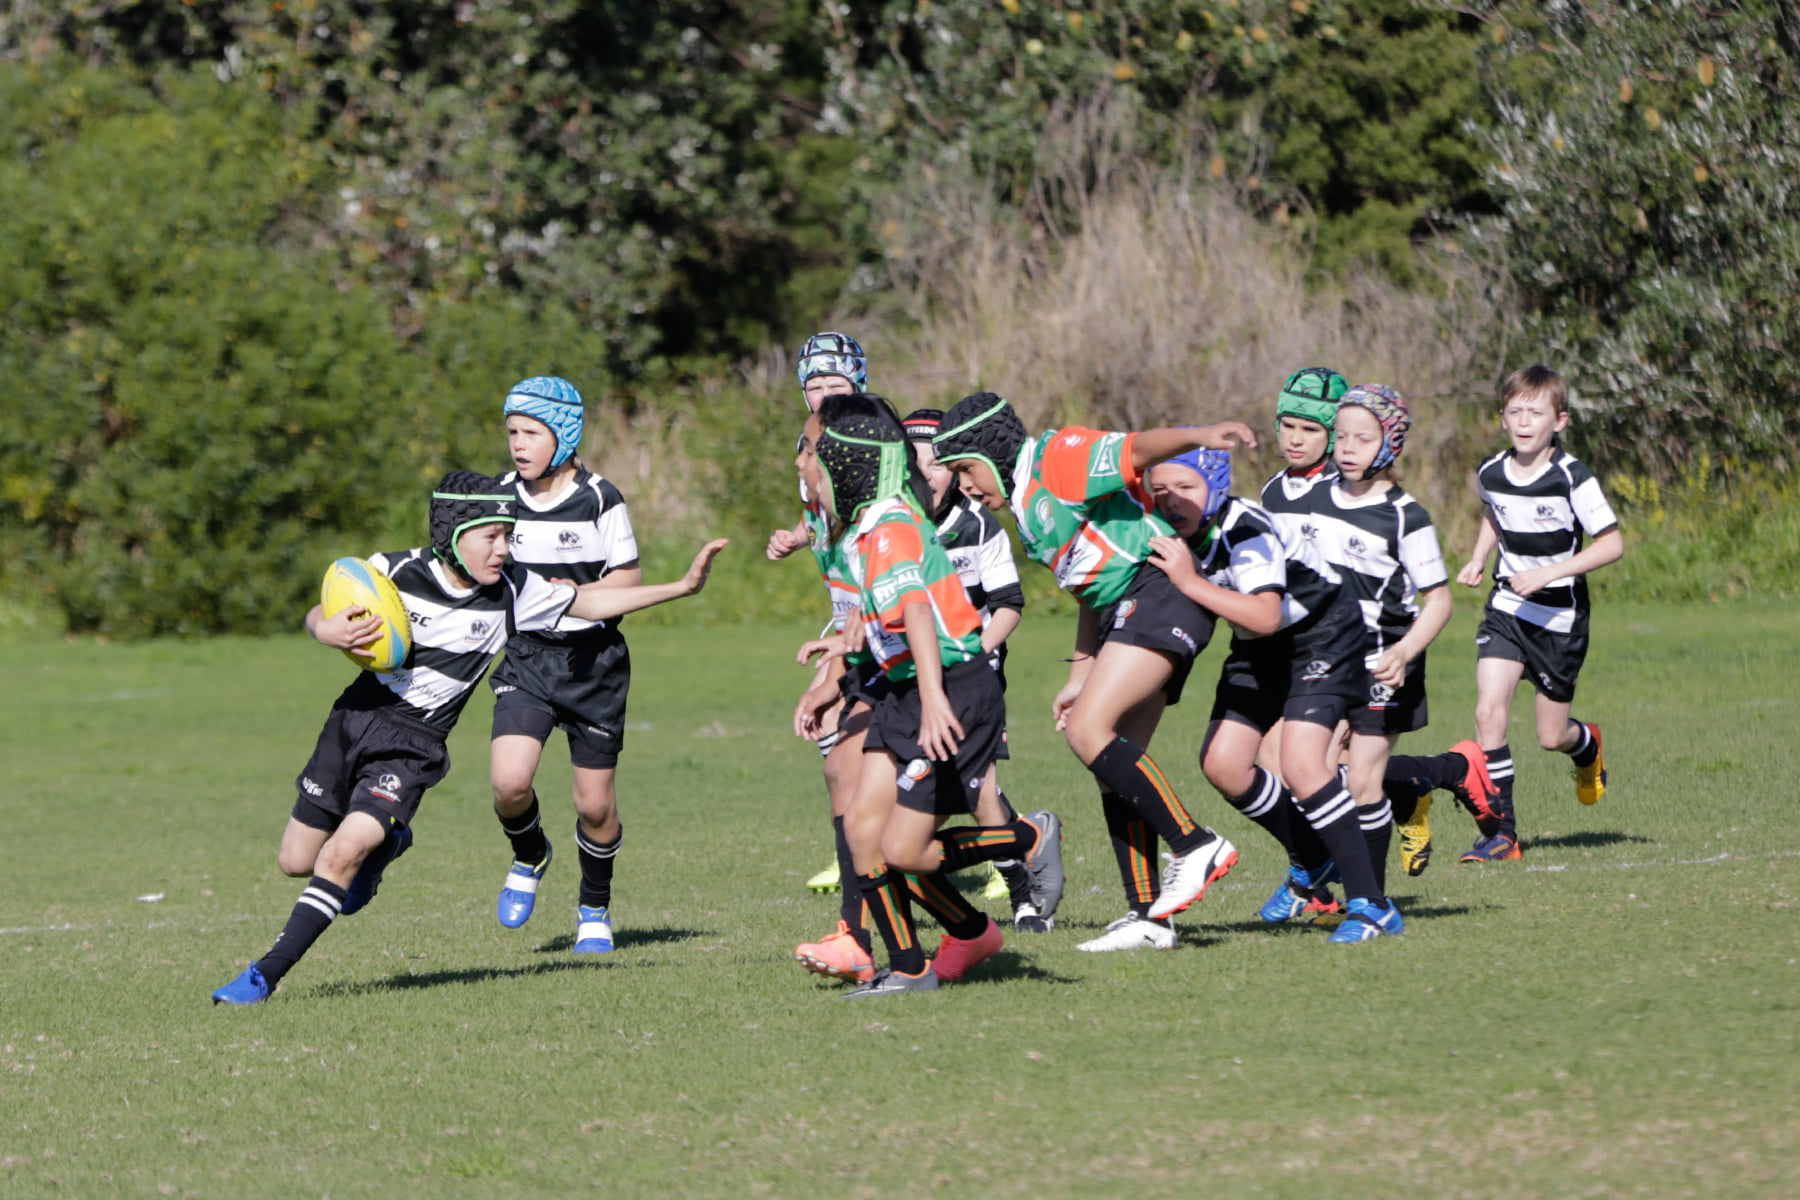 Action from the U10s game against Penrith...